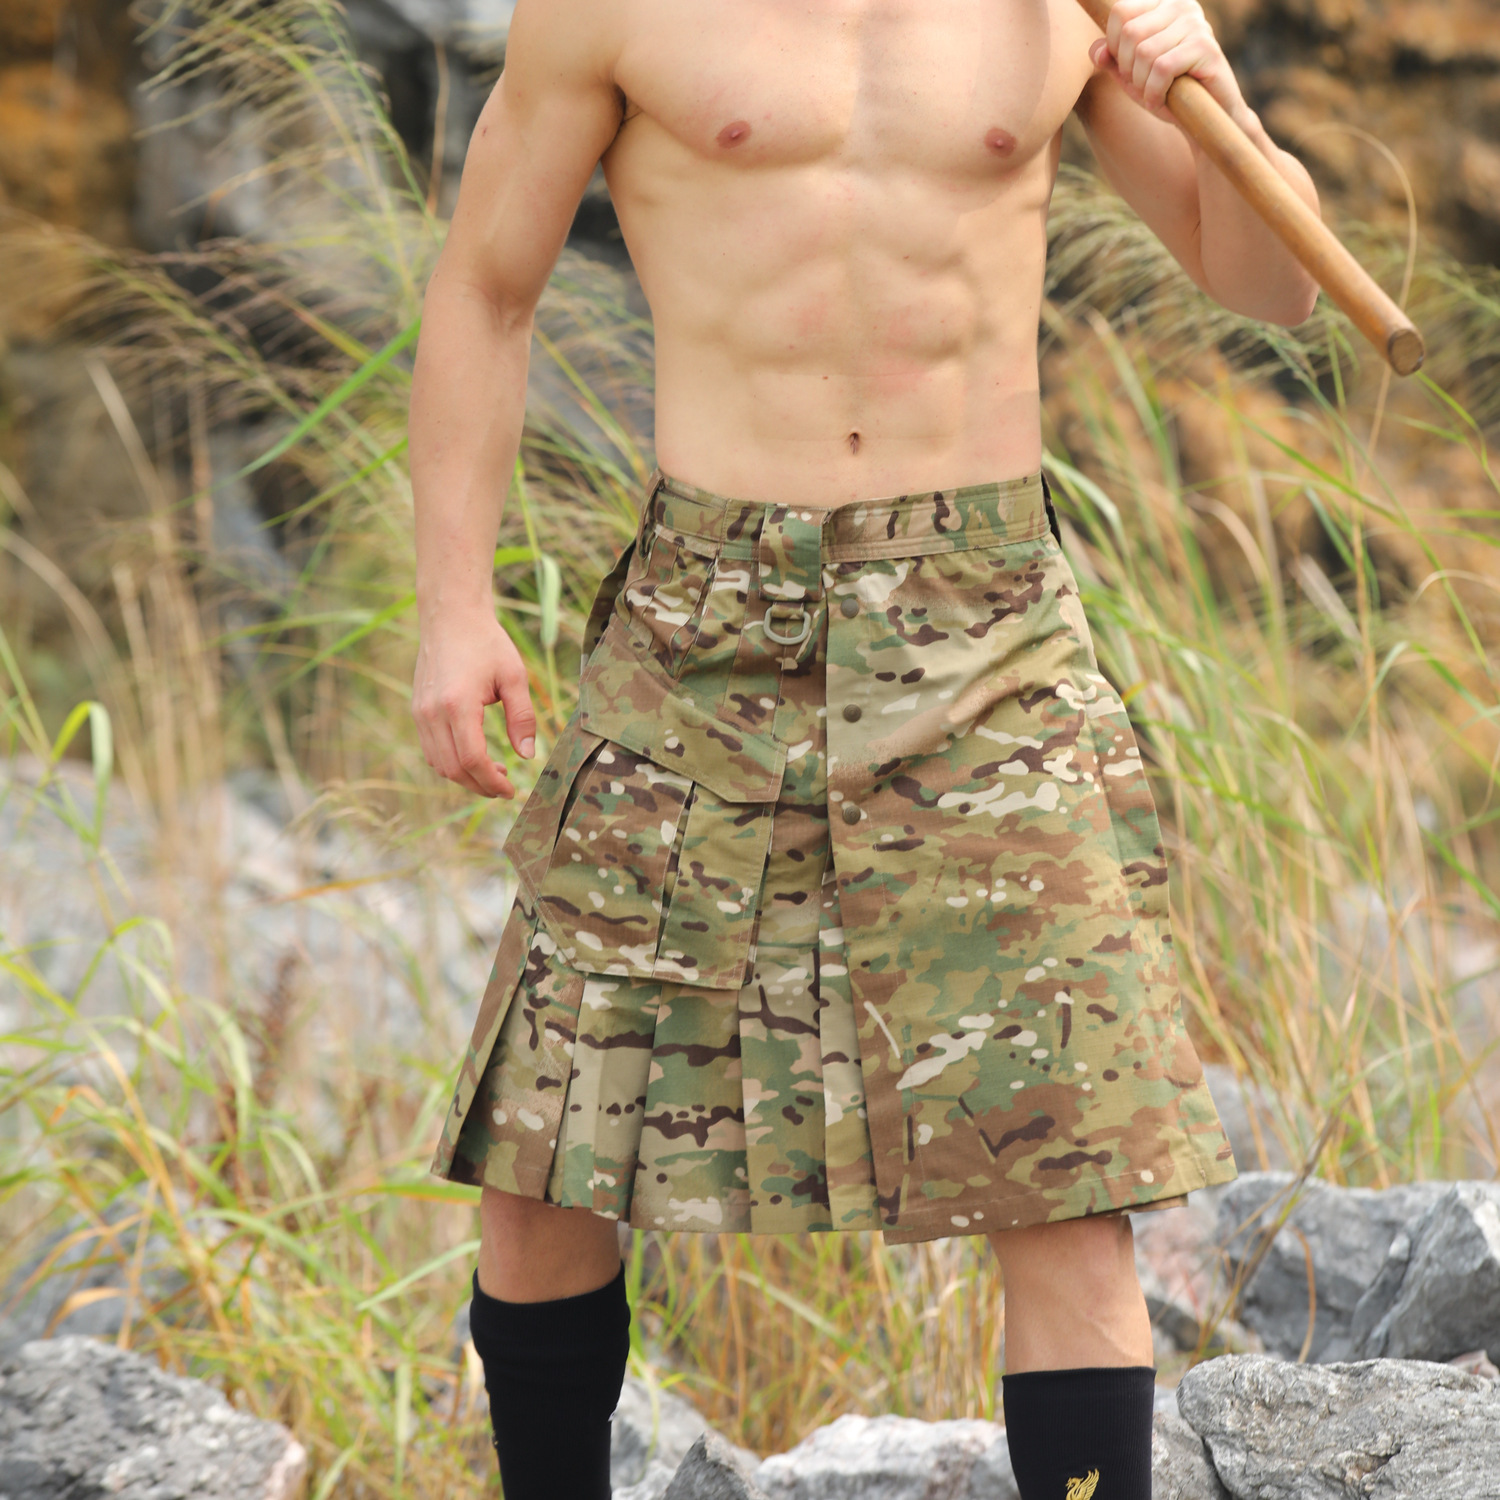 Men's Plaid Scottish Tactical Skirt Camouflage Anti wear Outdoor Camping Hiking Combat Scotland Male Sports Camo Trekking Shorts-in Hiking Shorts from Sports & Entertainment    3